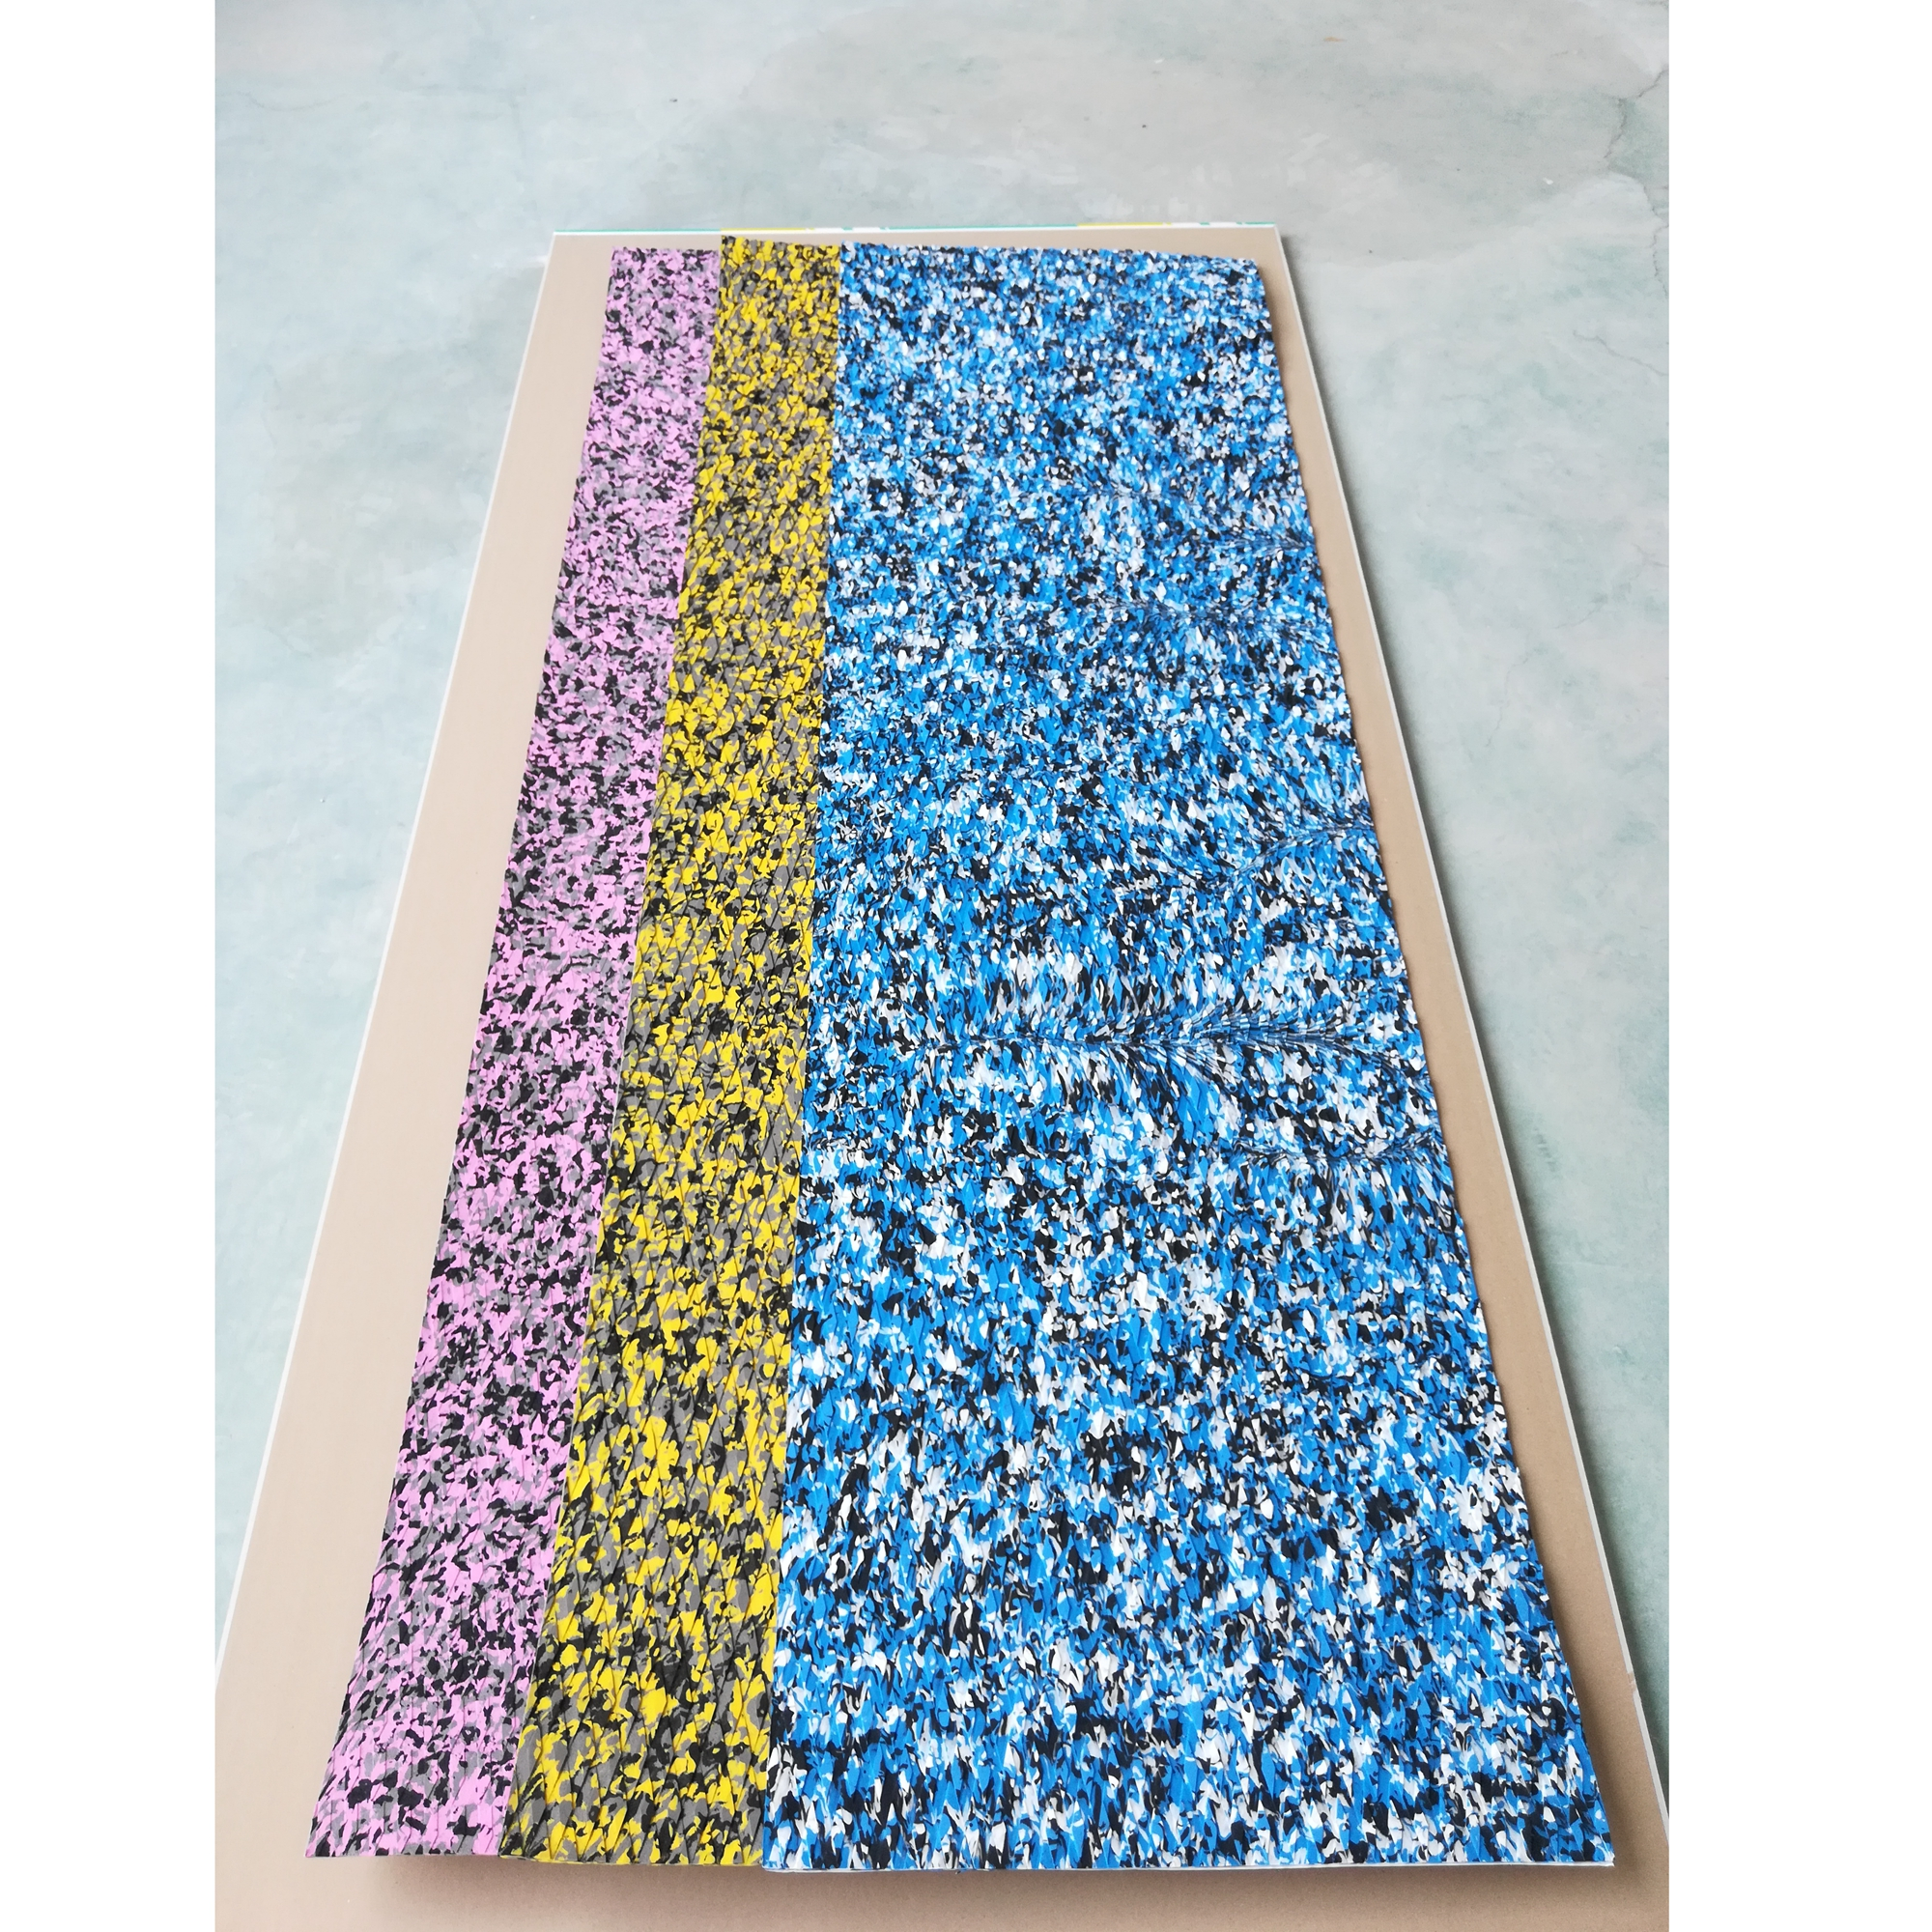 Camouflage blue yellow blue EVA 3M glue skidproof top pad deck pad stand up paddle board